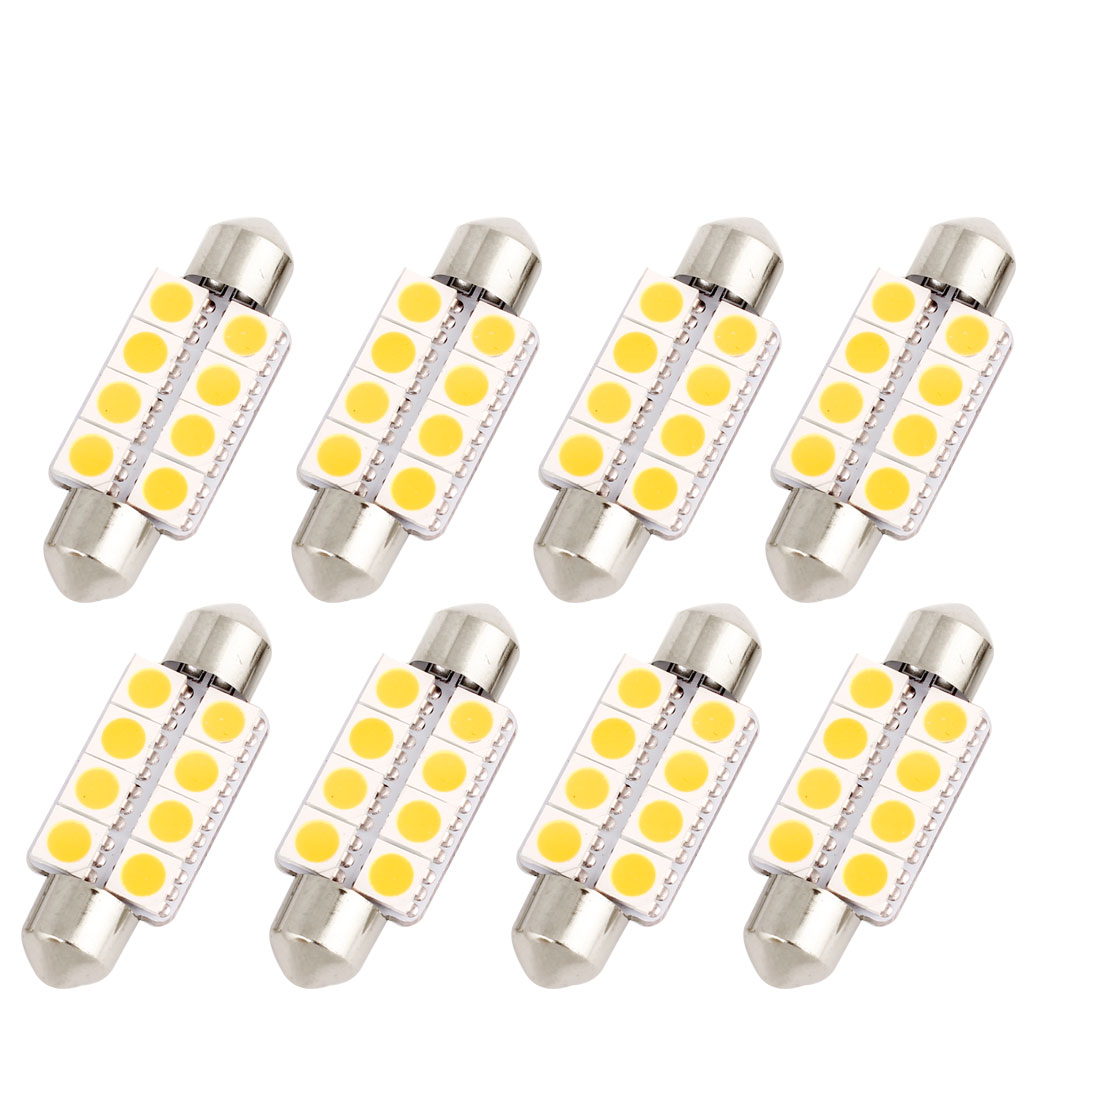 8pcs 39mm 5050 8-SMD Warm White LED Festoon Map Light 6411 6413 C5W Internal